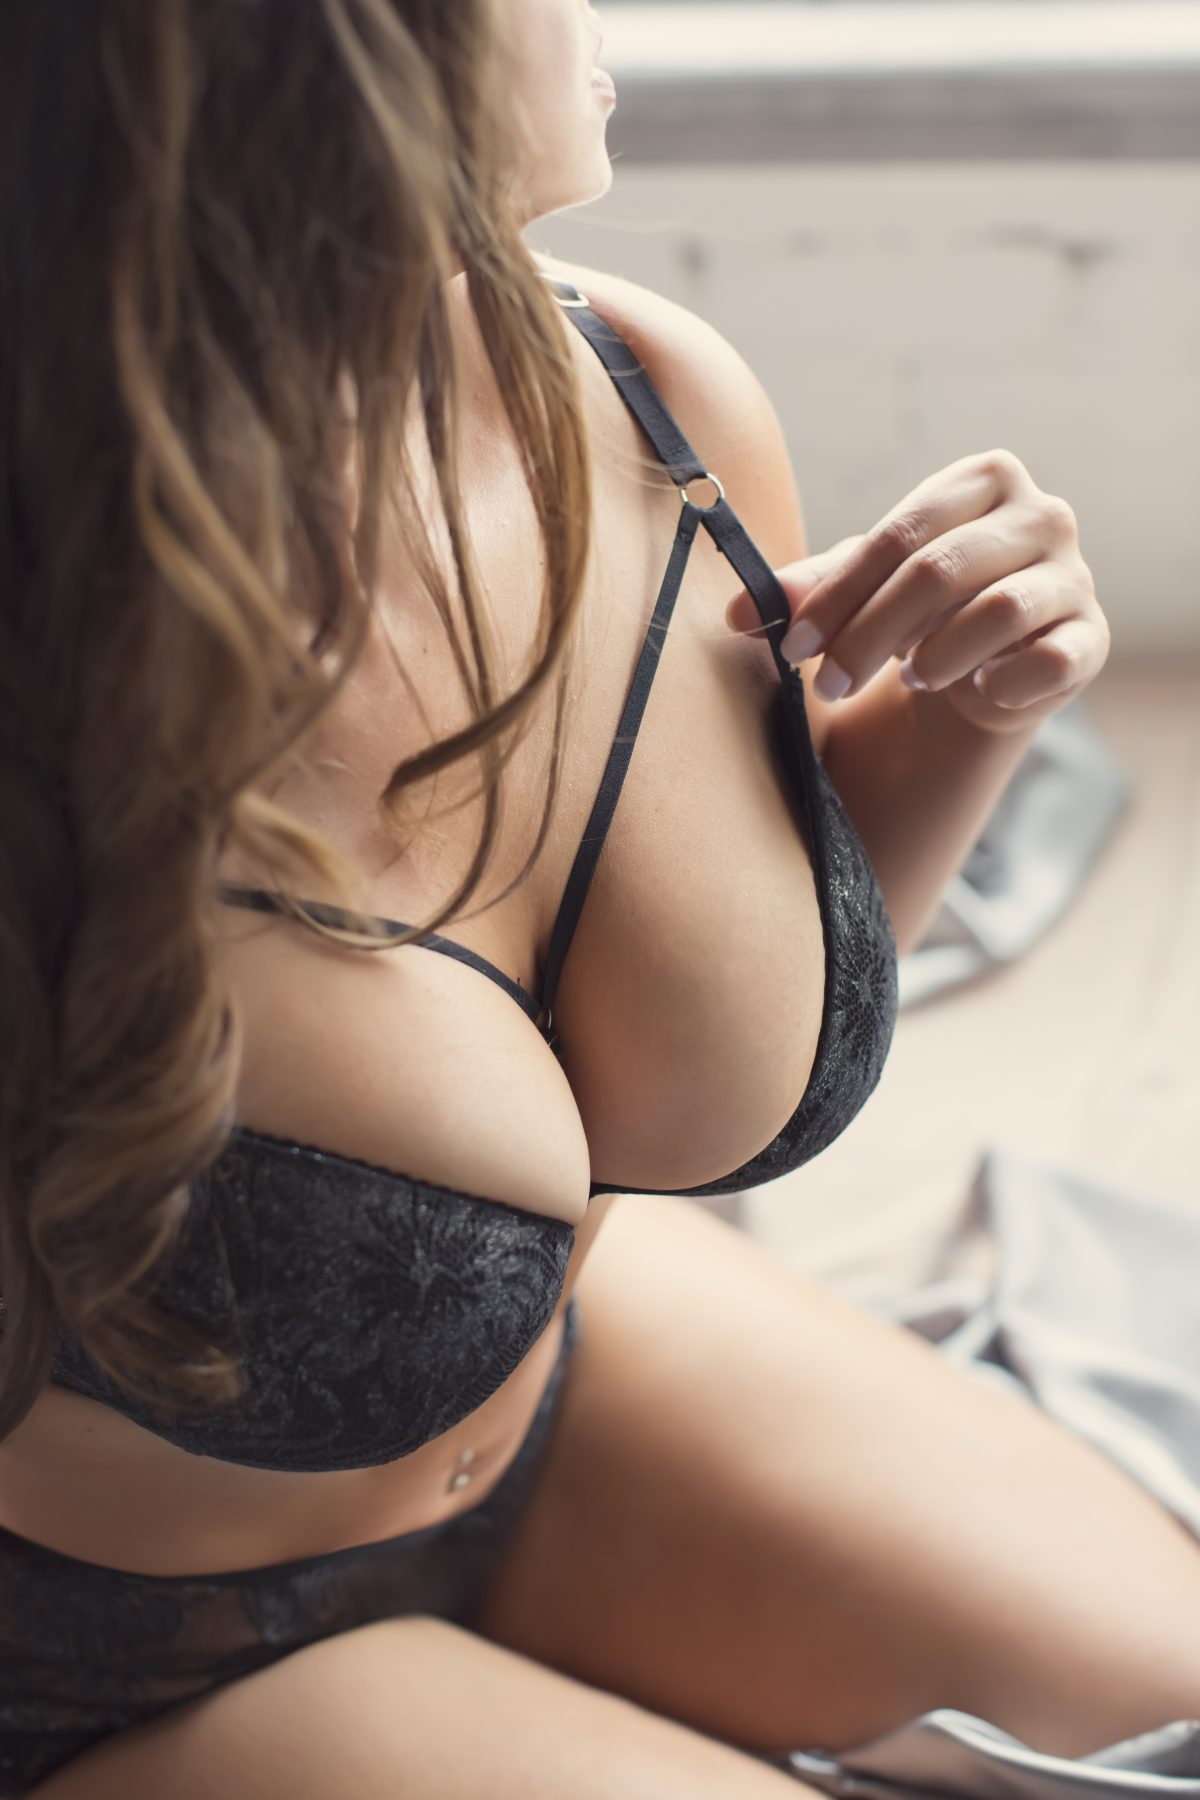 Toronto escorts companion upscale Evelyn Duo Couple-friendly Disability-friendly Non-smoking Mature Curvy Breasts Natural Other European Tattoos Large